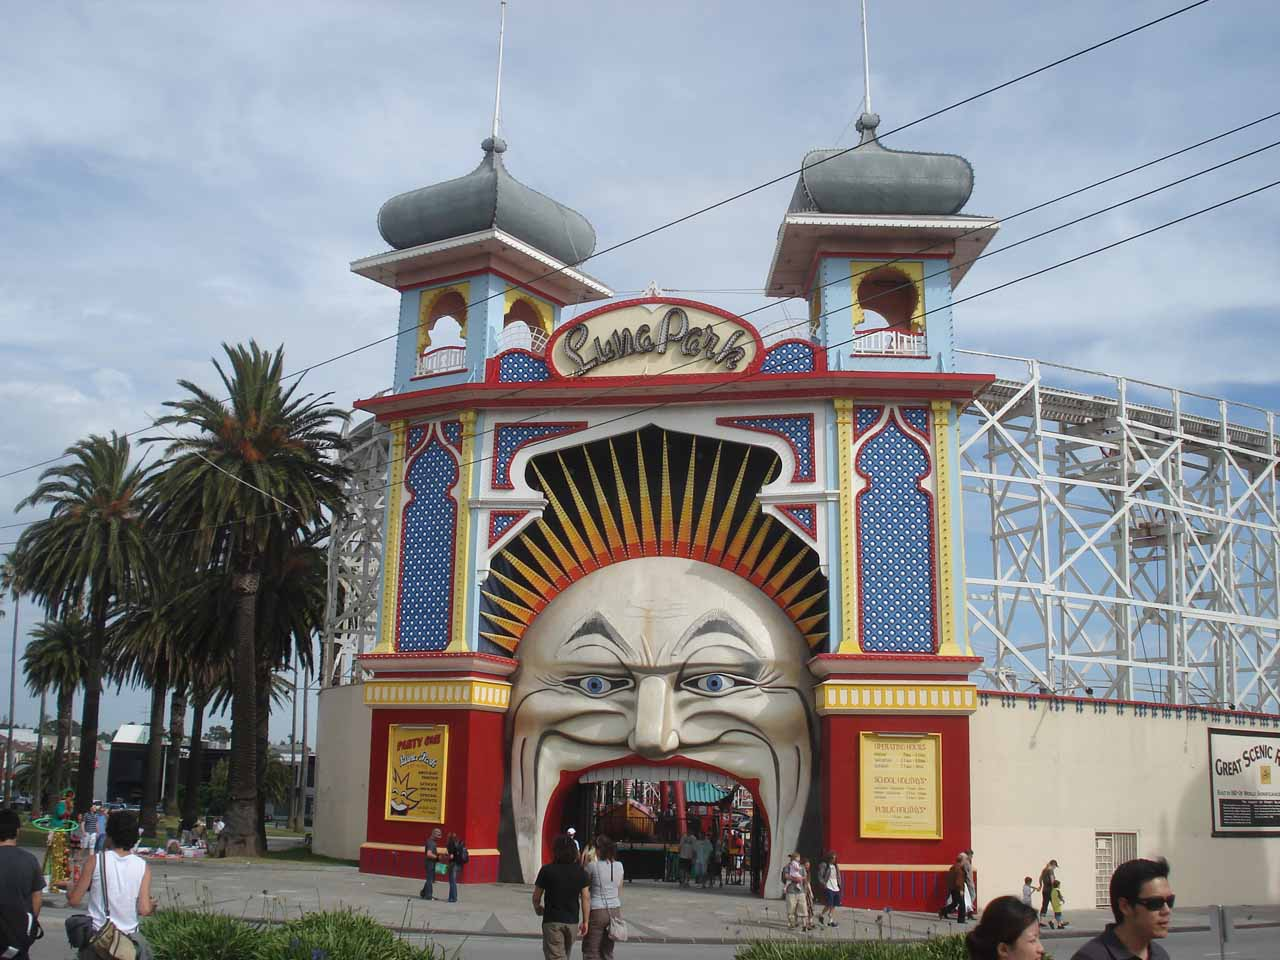 Some amusement park around St Kilda